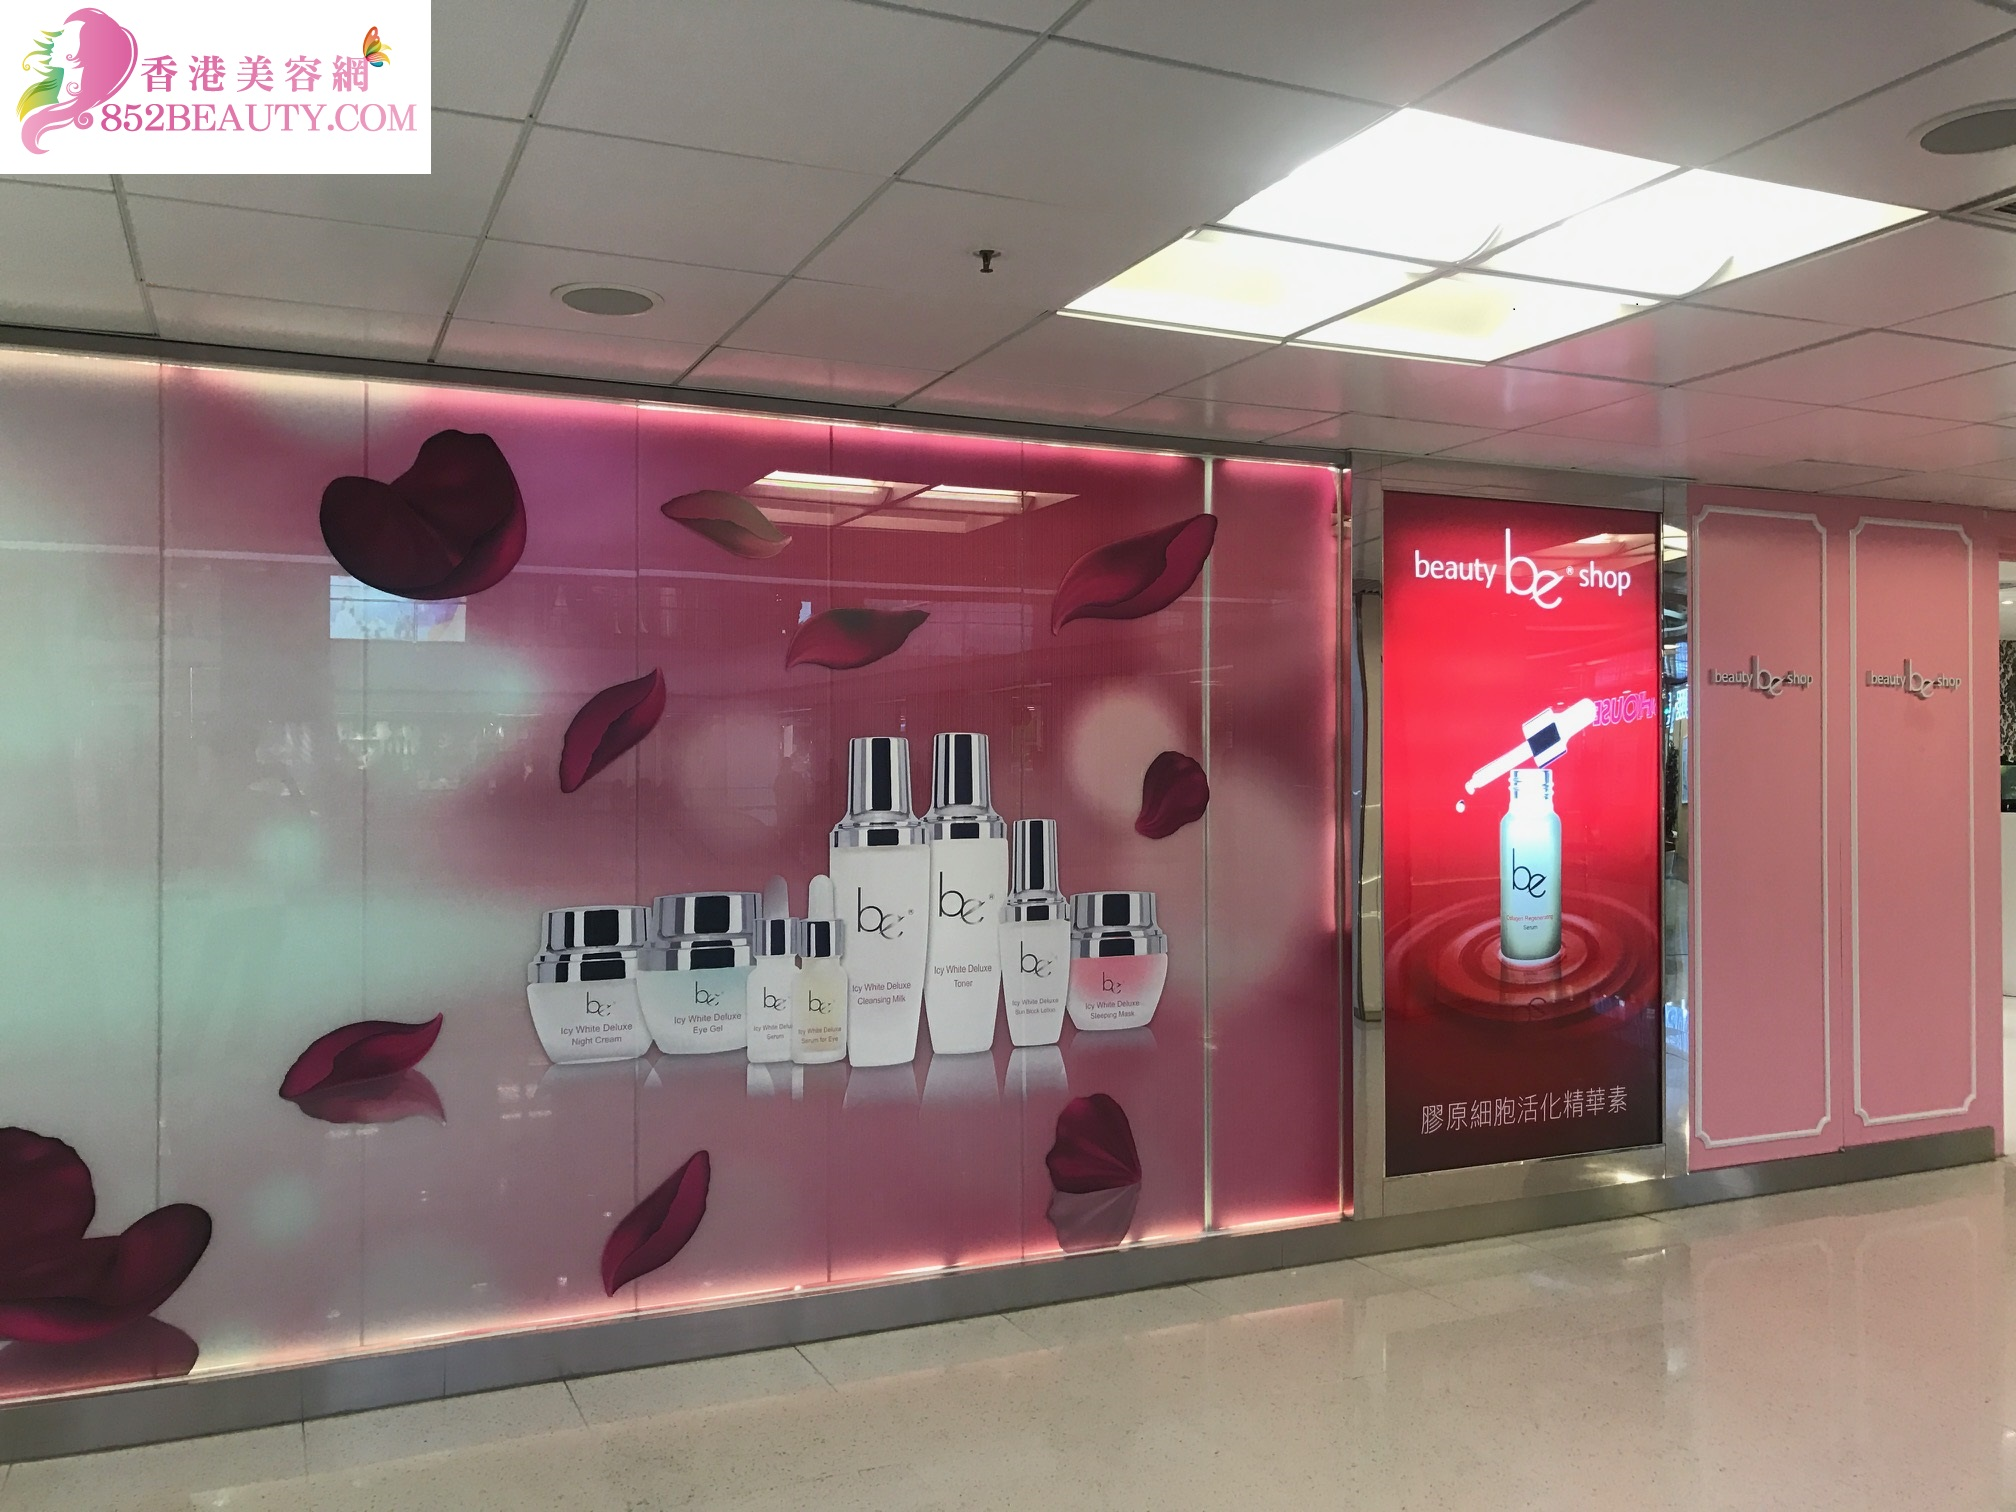 美容院: Beauty Be Shop (葵涌廣場)